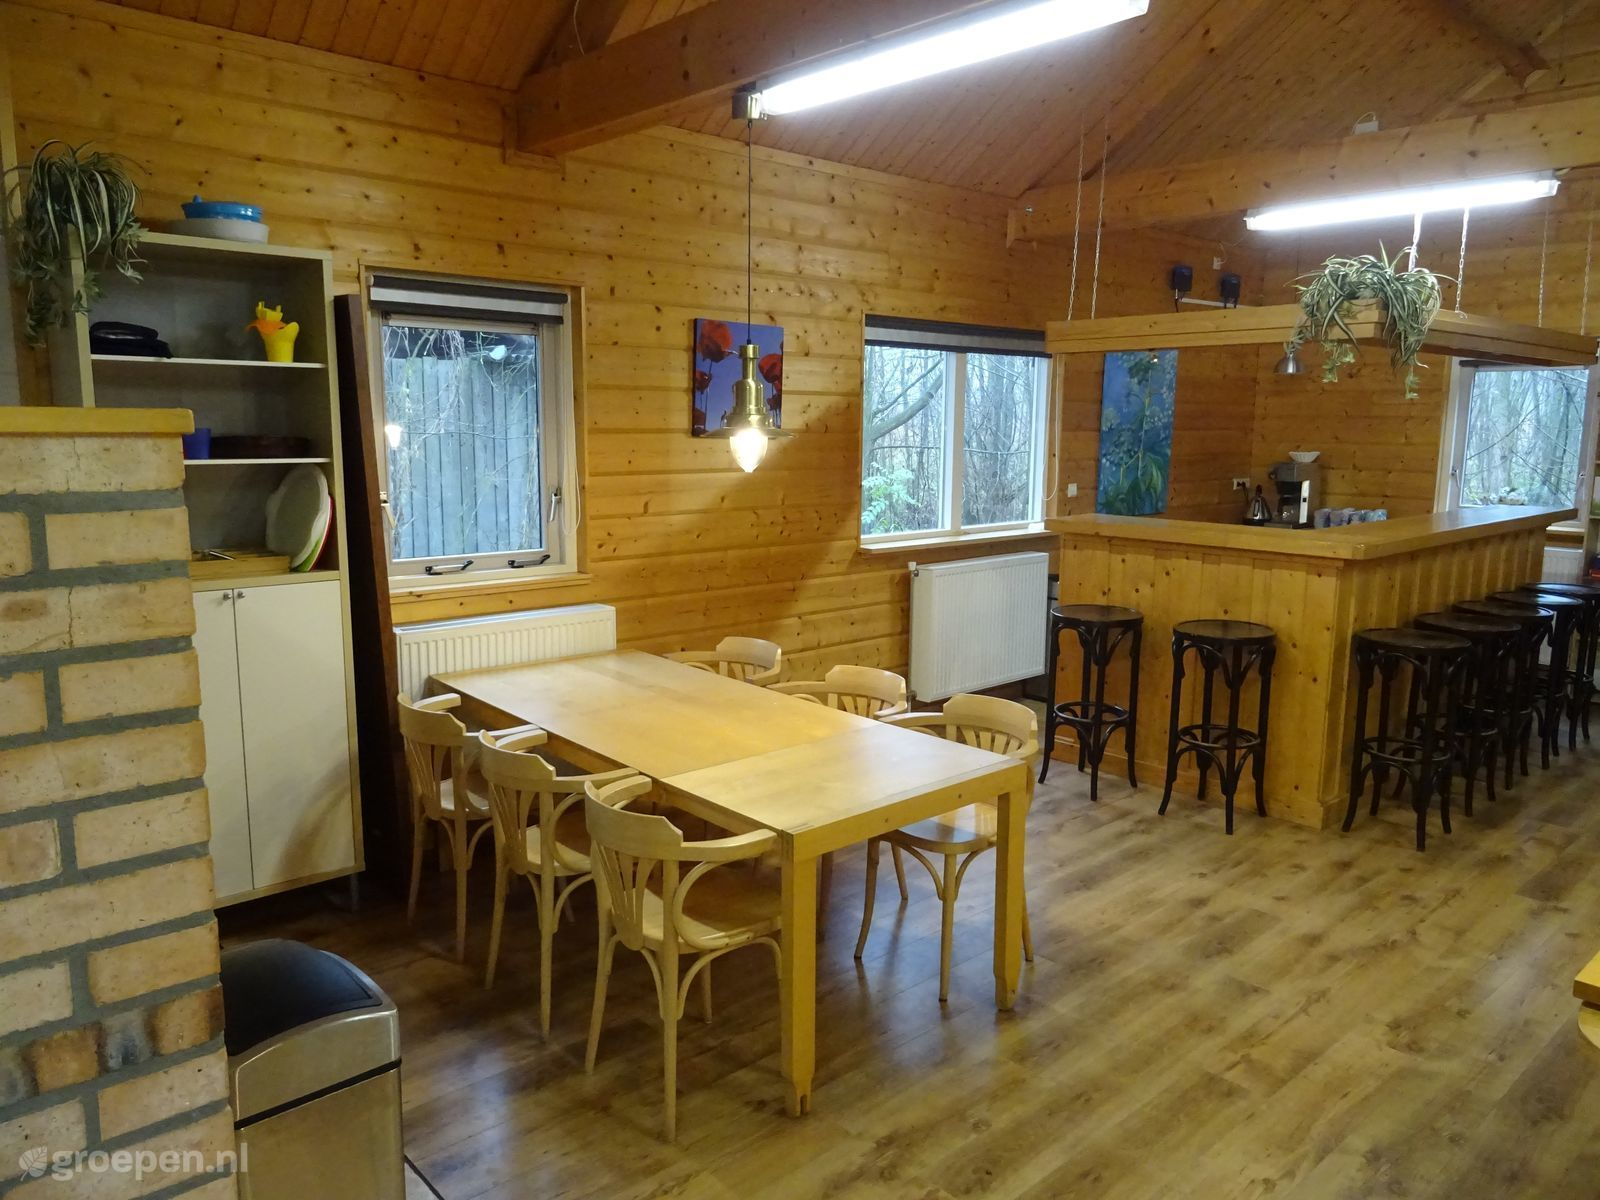 Group accommodation Geesteren